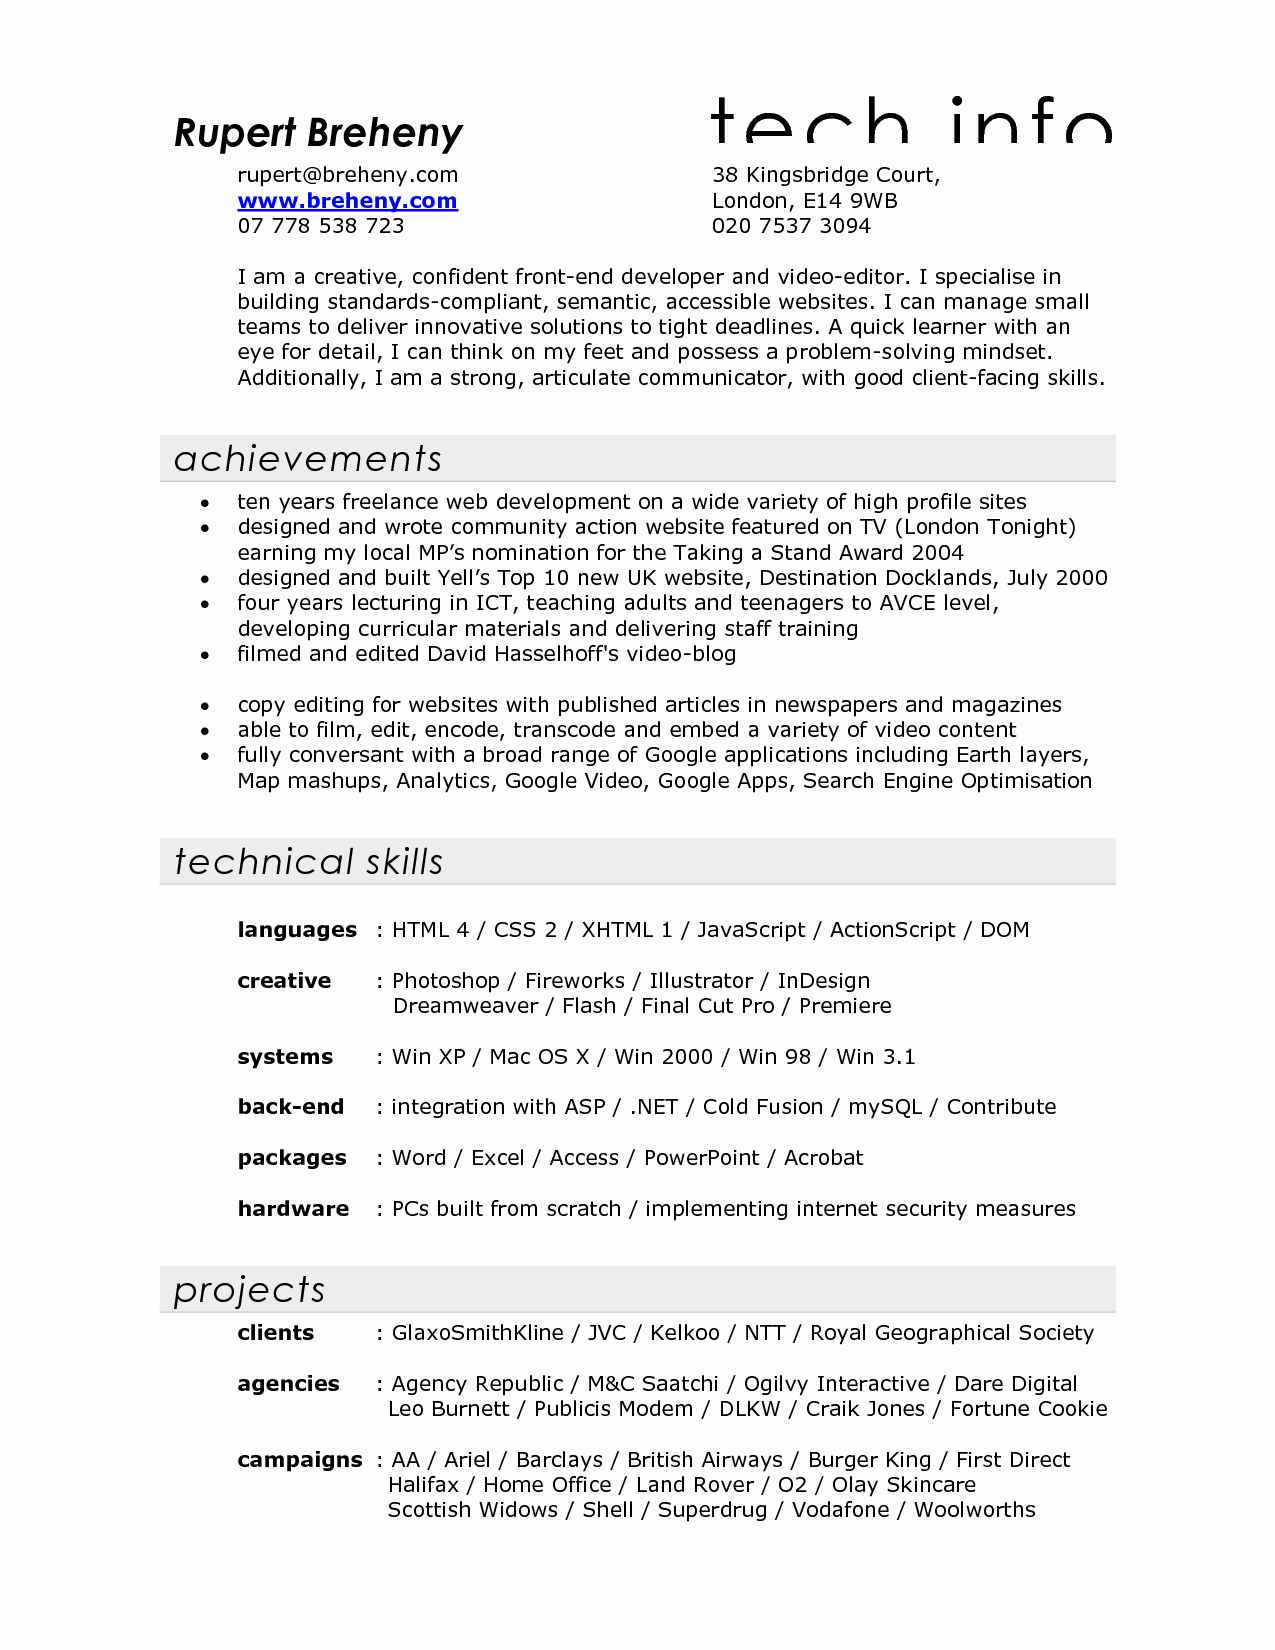 011 Film Director Resume Template Inspirational Gre Awa Analytical Essays For Writing Issue Essay Sample S Breathtaking About Life And Struggles Youth Full